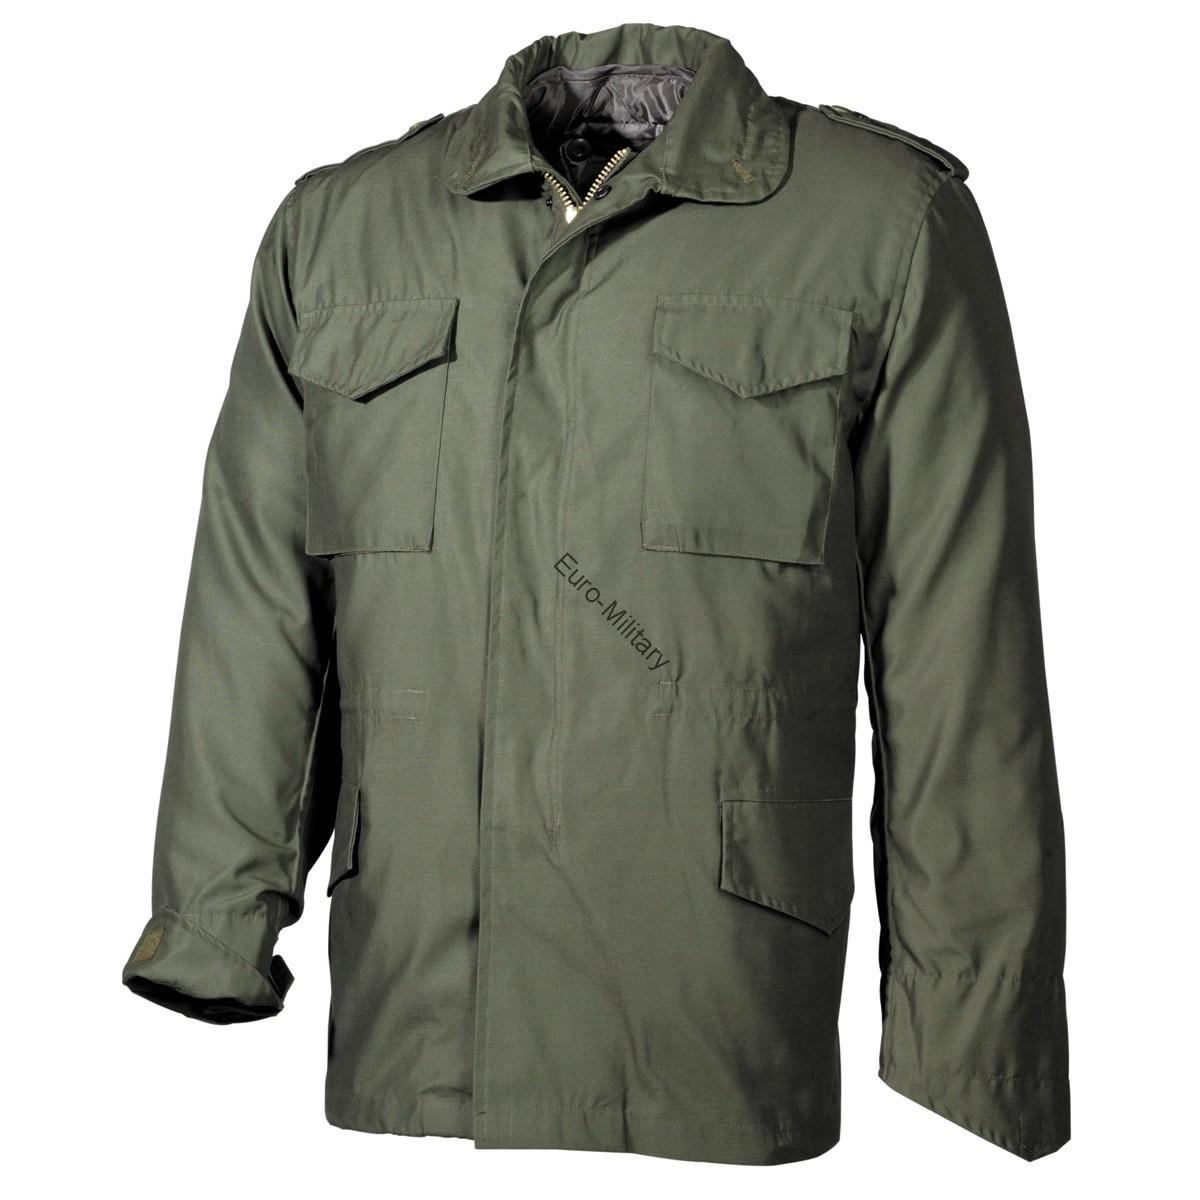 US Army M65 Field Jacket Lining Mod - OD Green